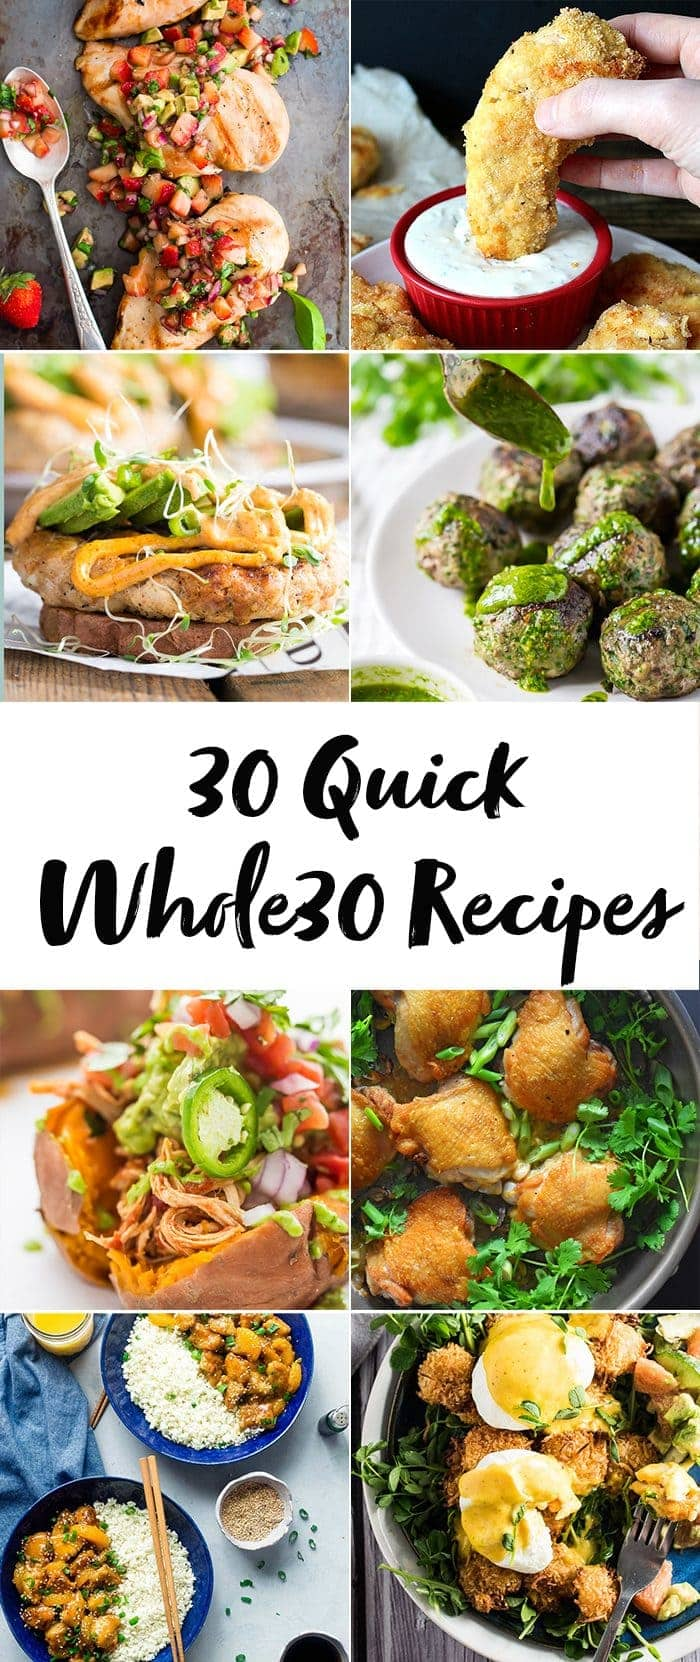 30 Quick Whole30 Recipes (Whole30 Dinner Recipes